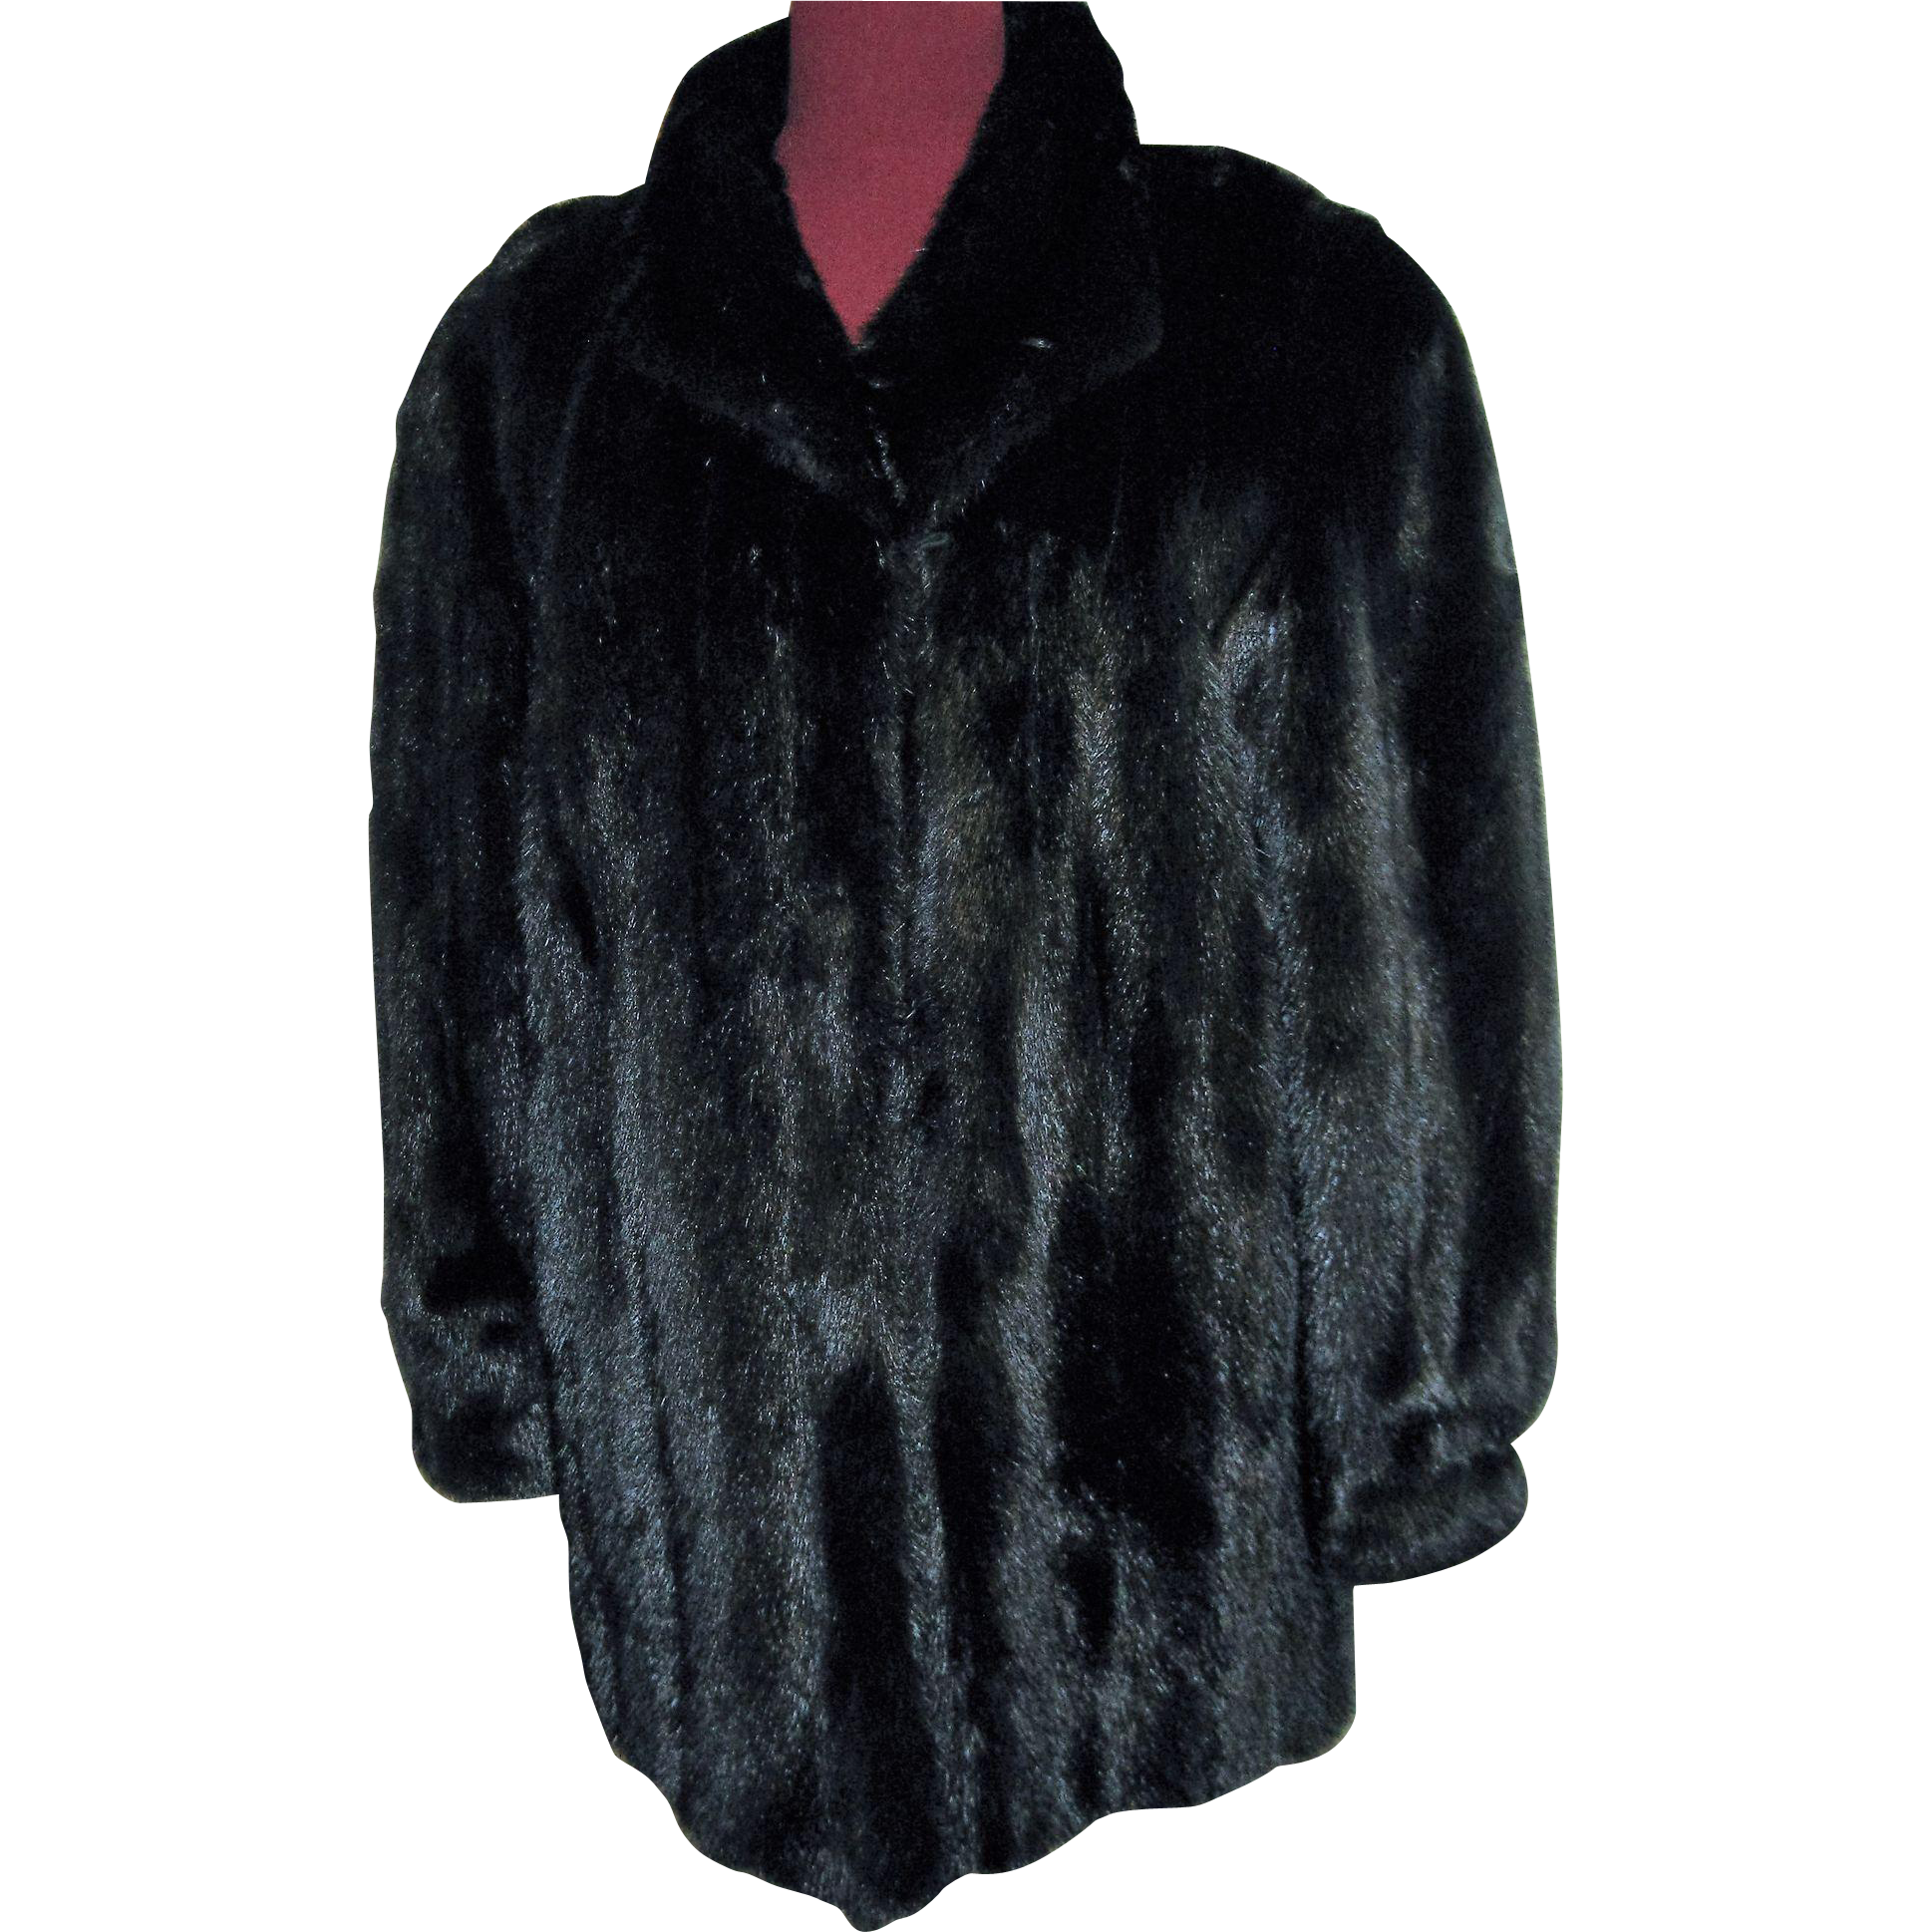 Fab and Perfect Black Mink Fur Jacket Coat L - XL